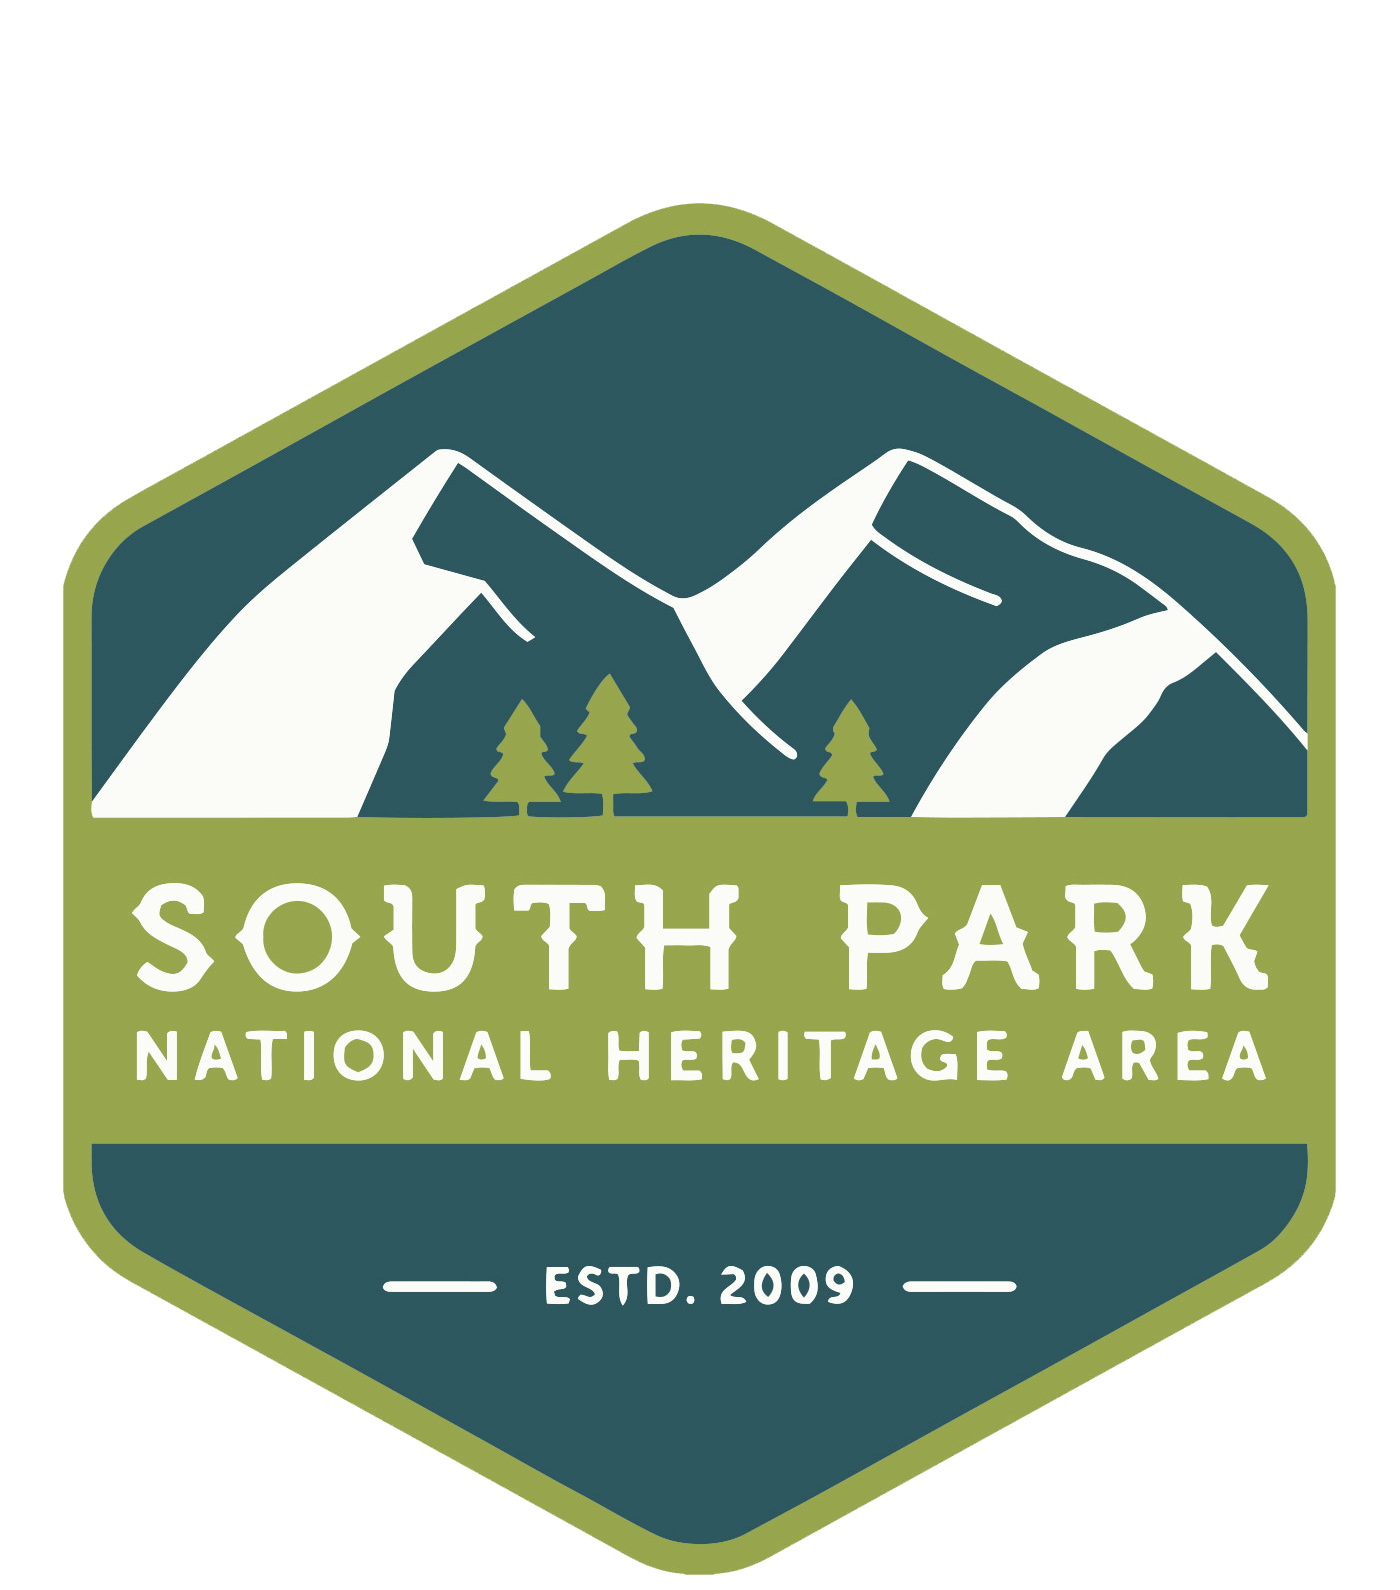 South Park National Heritage Area